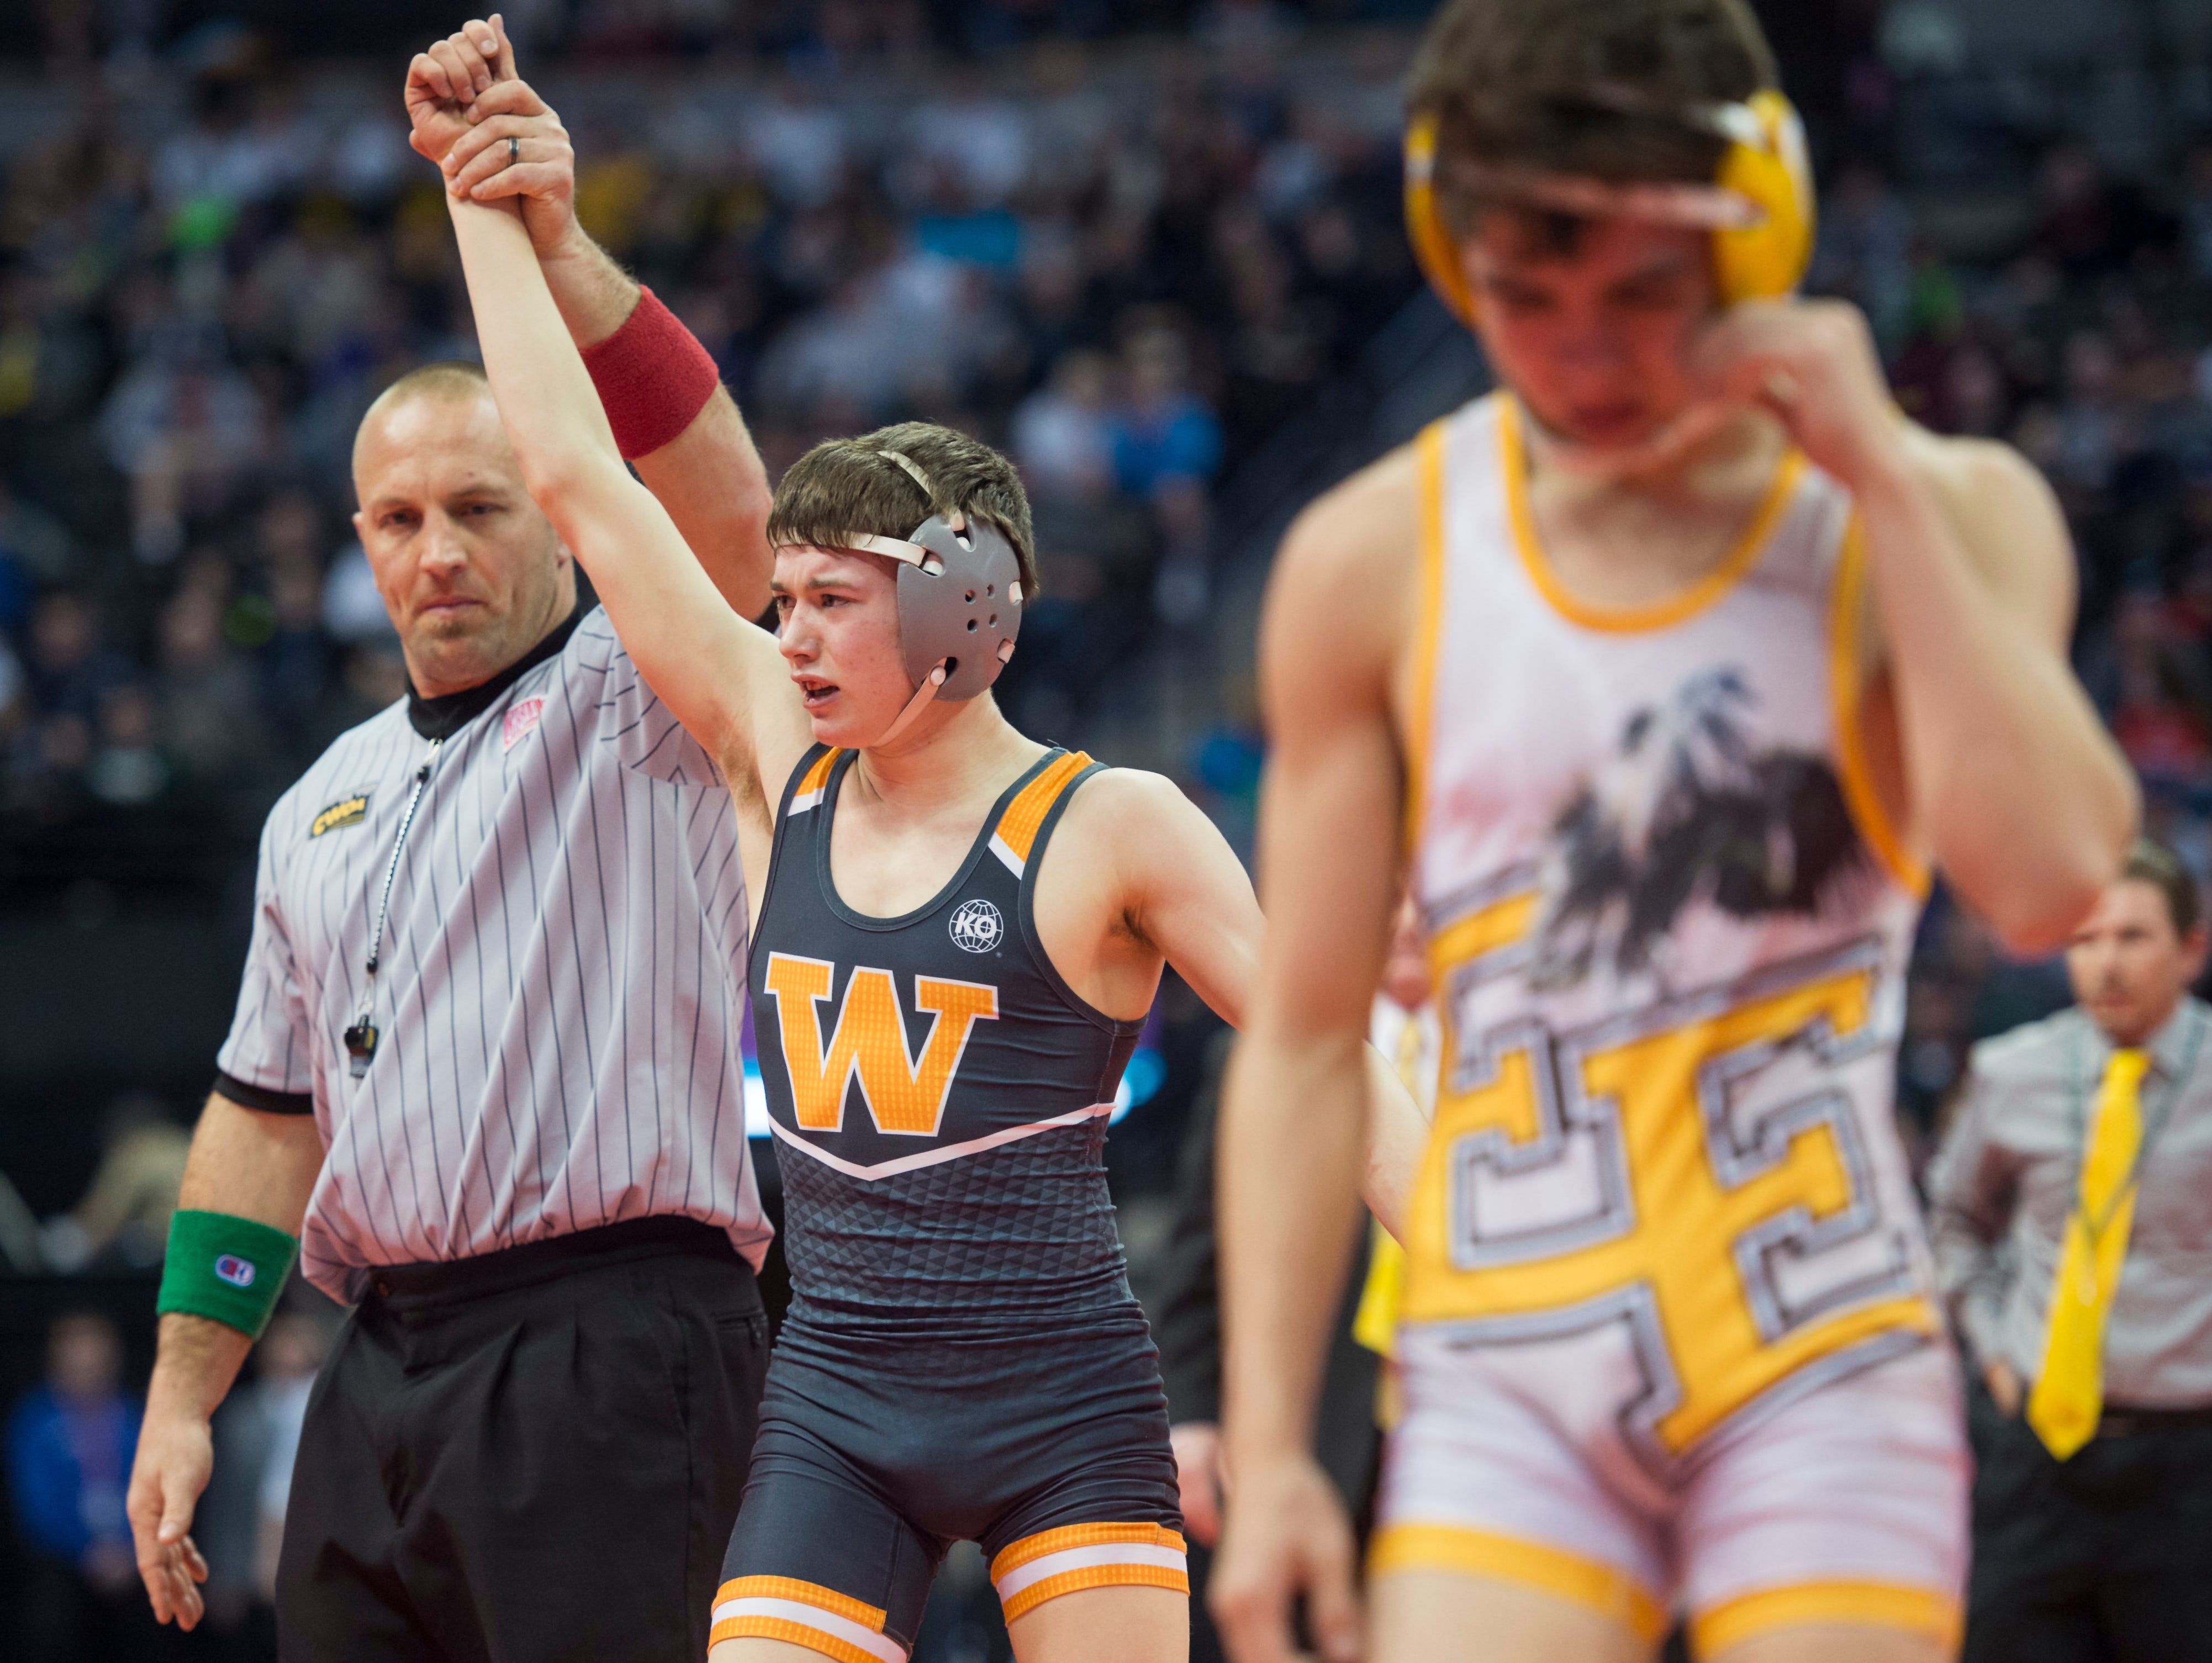 Will Vombaur of Windsor High School is declared champion following his first place match against Andrew Lucero of Pueblo East during the CHSAA state wrestling tournament at the Pepsi Center in Denver Saturday, February 20, 2016. Greenwood walked away with his second state title.